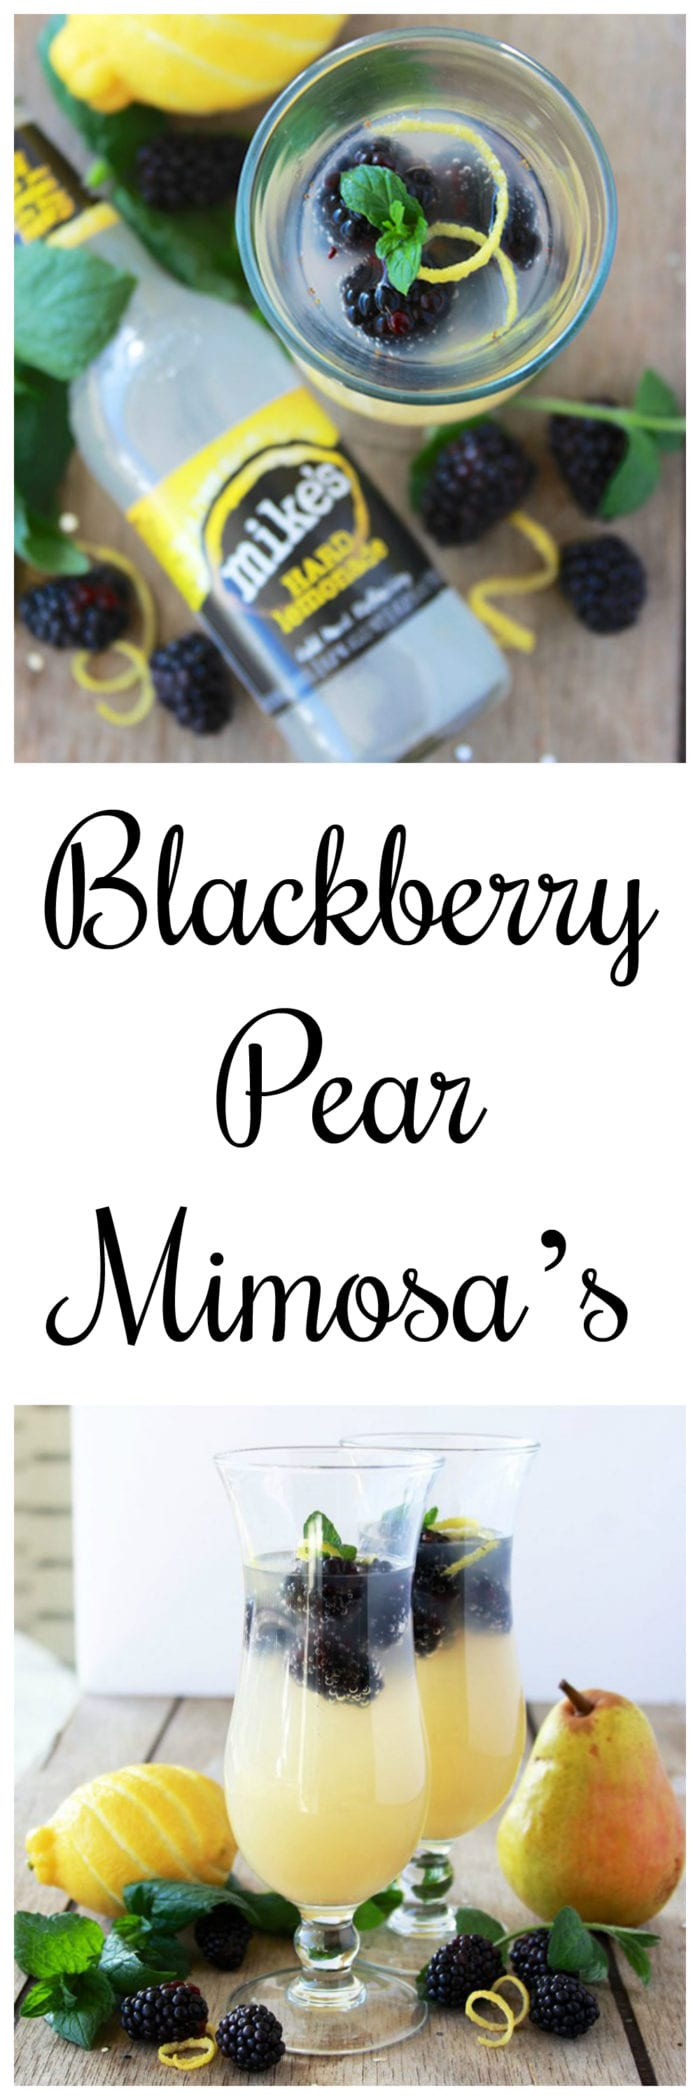 #ad Blackberry Pear Mimosas will bring happiness to your holiday brunch! #MikesHard #DrinkOnTheBrightSide www.cookingwithruthie.com